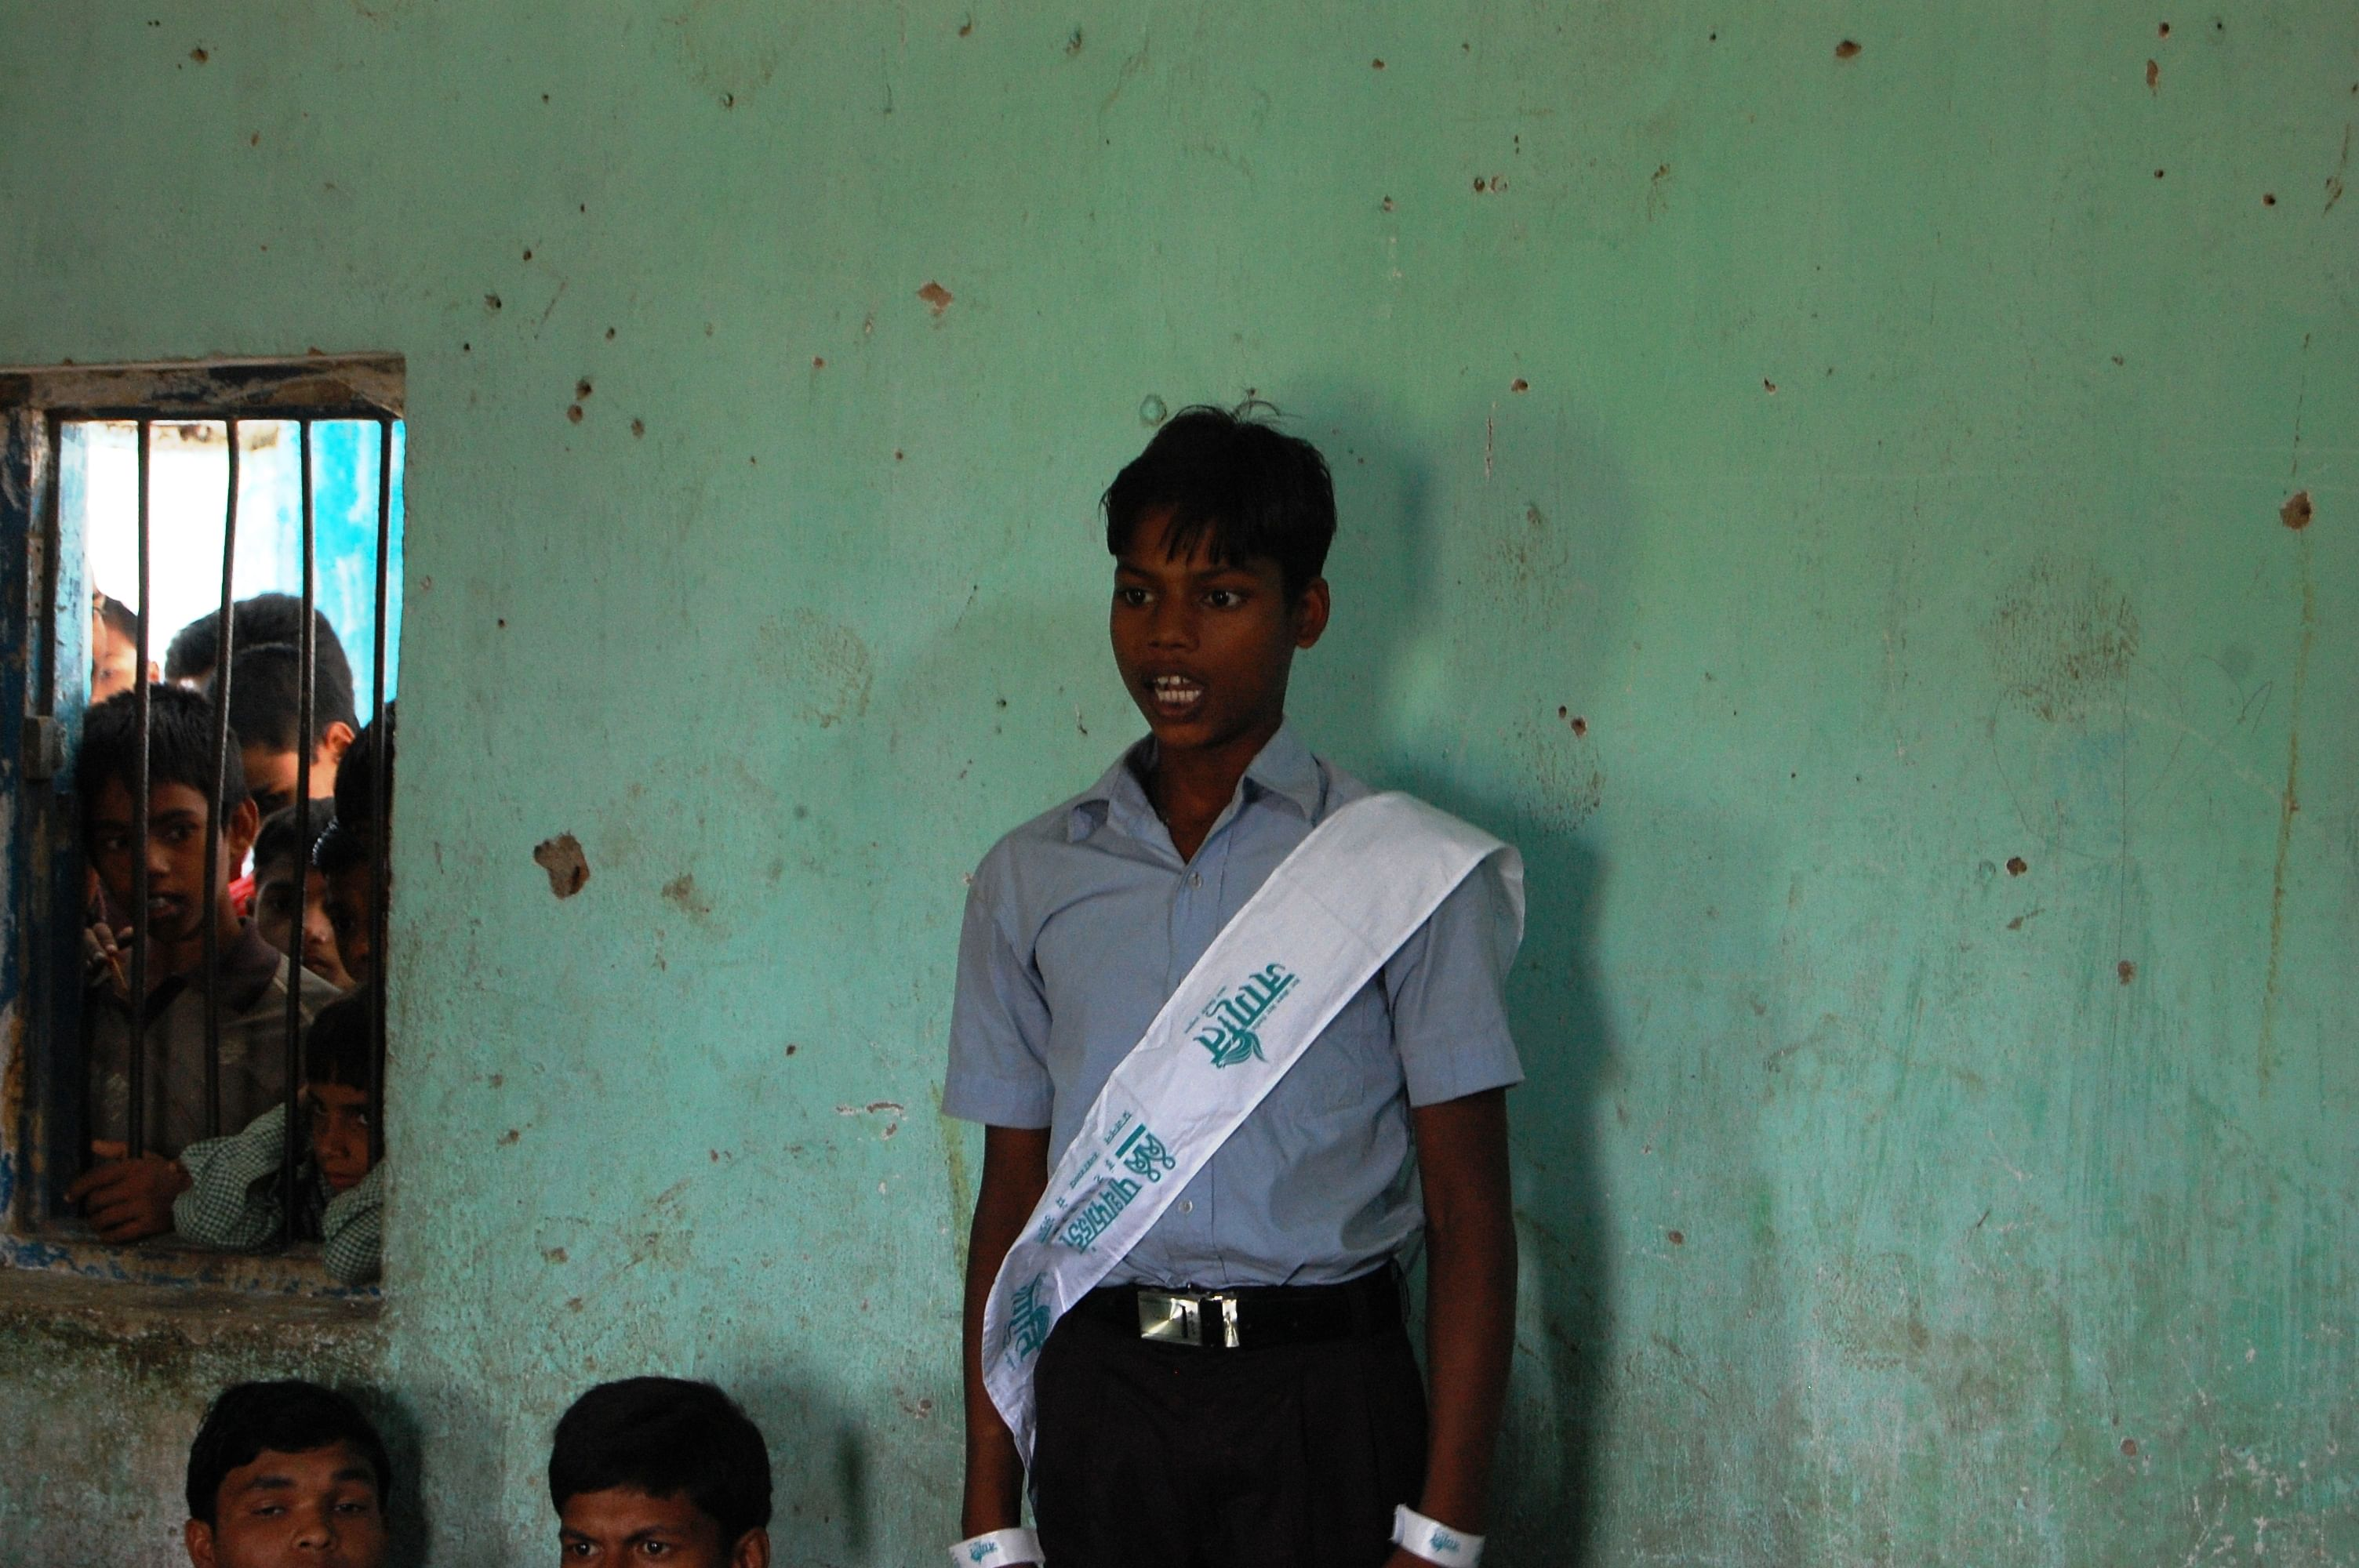 Aakash Kumar, 17, a resident of Tekna Farm, a small hamlet in Bodh Gaya, Bihar, took on his parents and the community to stop the marriage of his 13-year-old cousin sister. He has attended sensitisation trainings under the PRACHAR programme that showed him the significance of delayed marriage on the health and well being of women and families. (Courtesy: Pathfinder International)